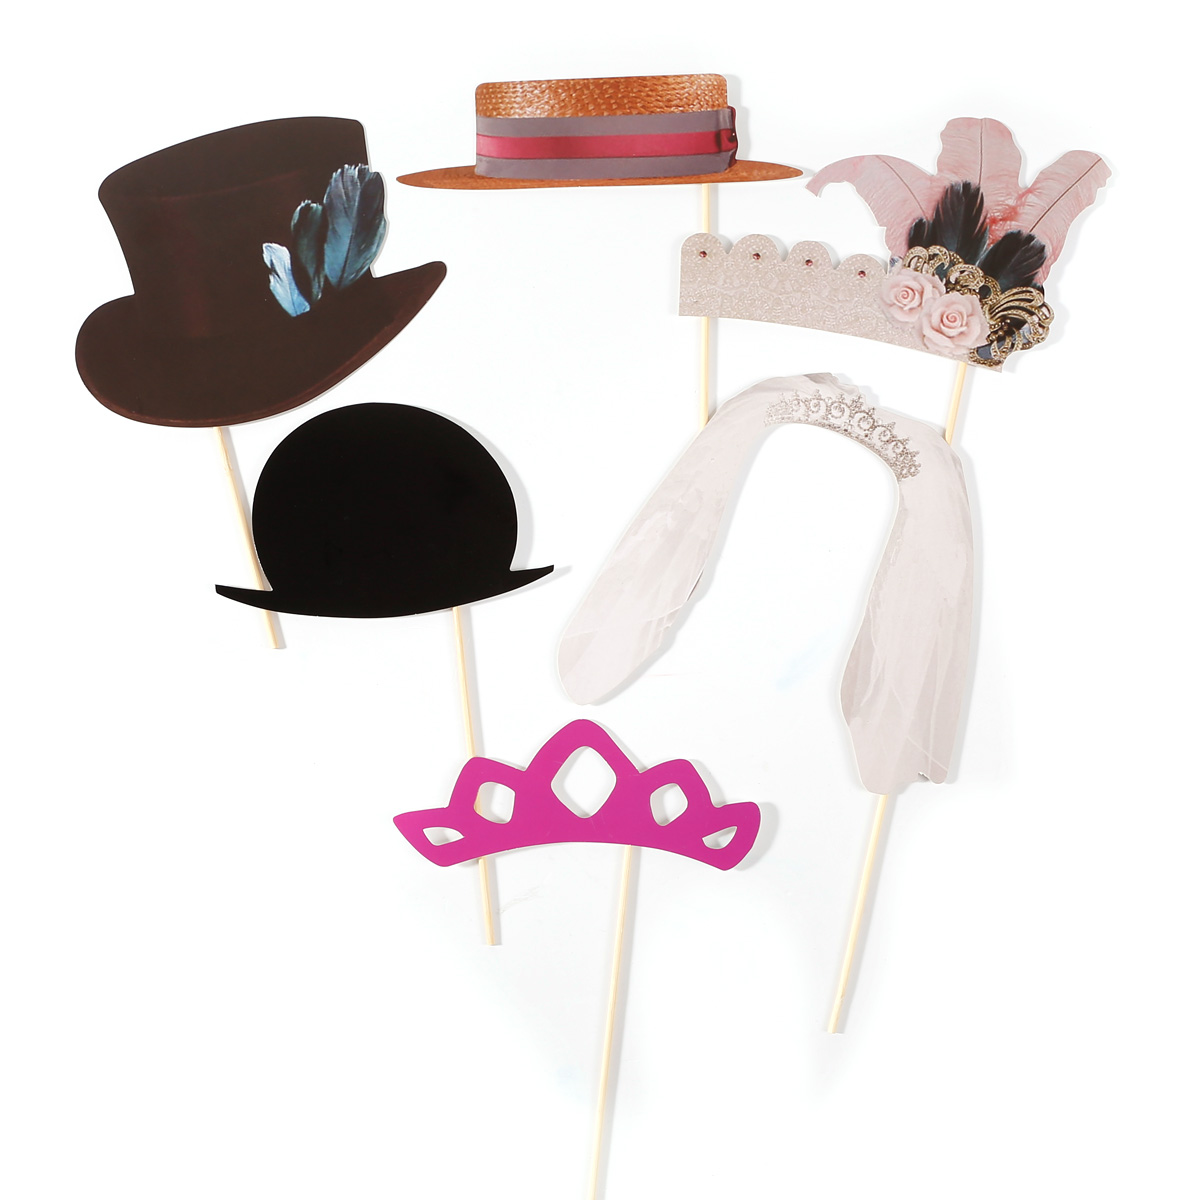 42 party photo booth selfie props colourful wedding moustache lips fun on sticks ebay. Black Bedroom Furniture Sets. Home Design Ideas